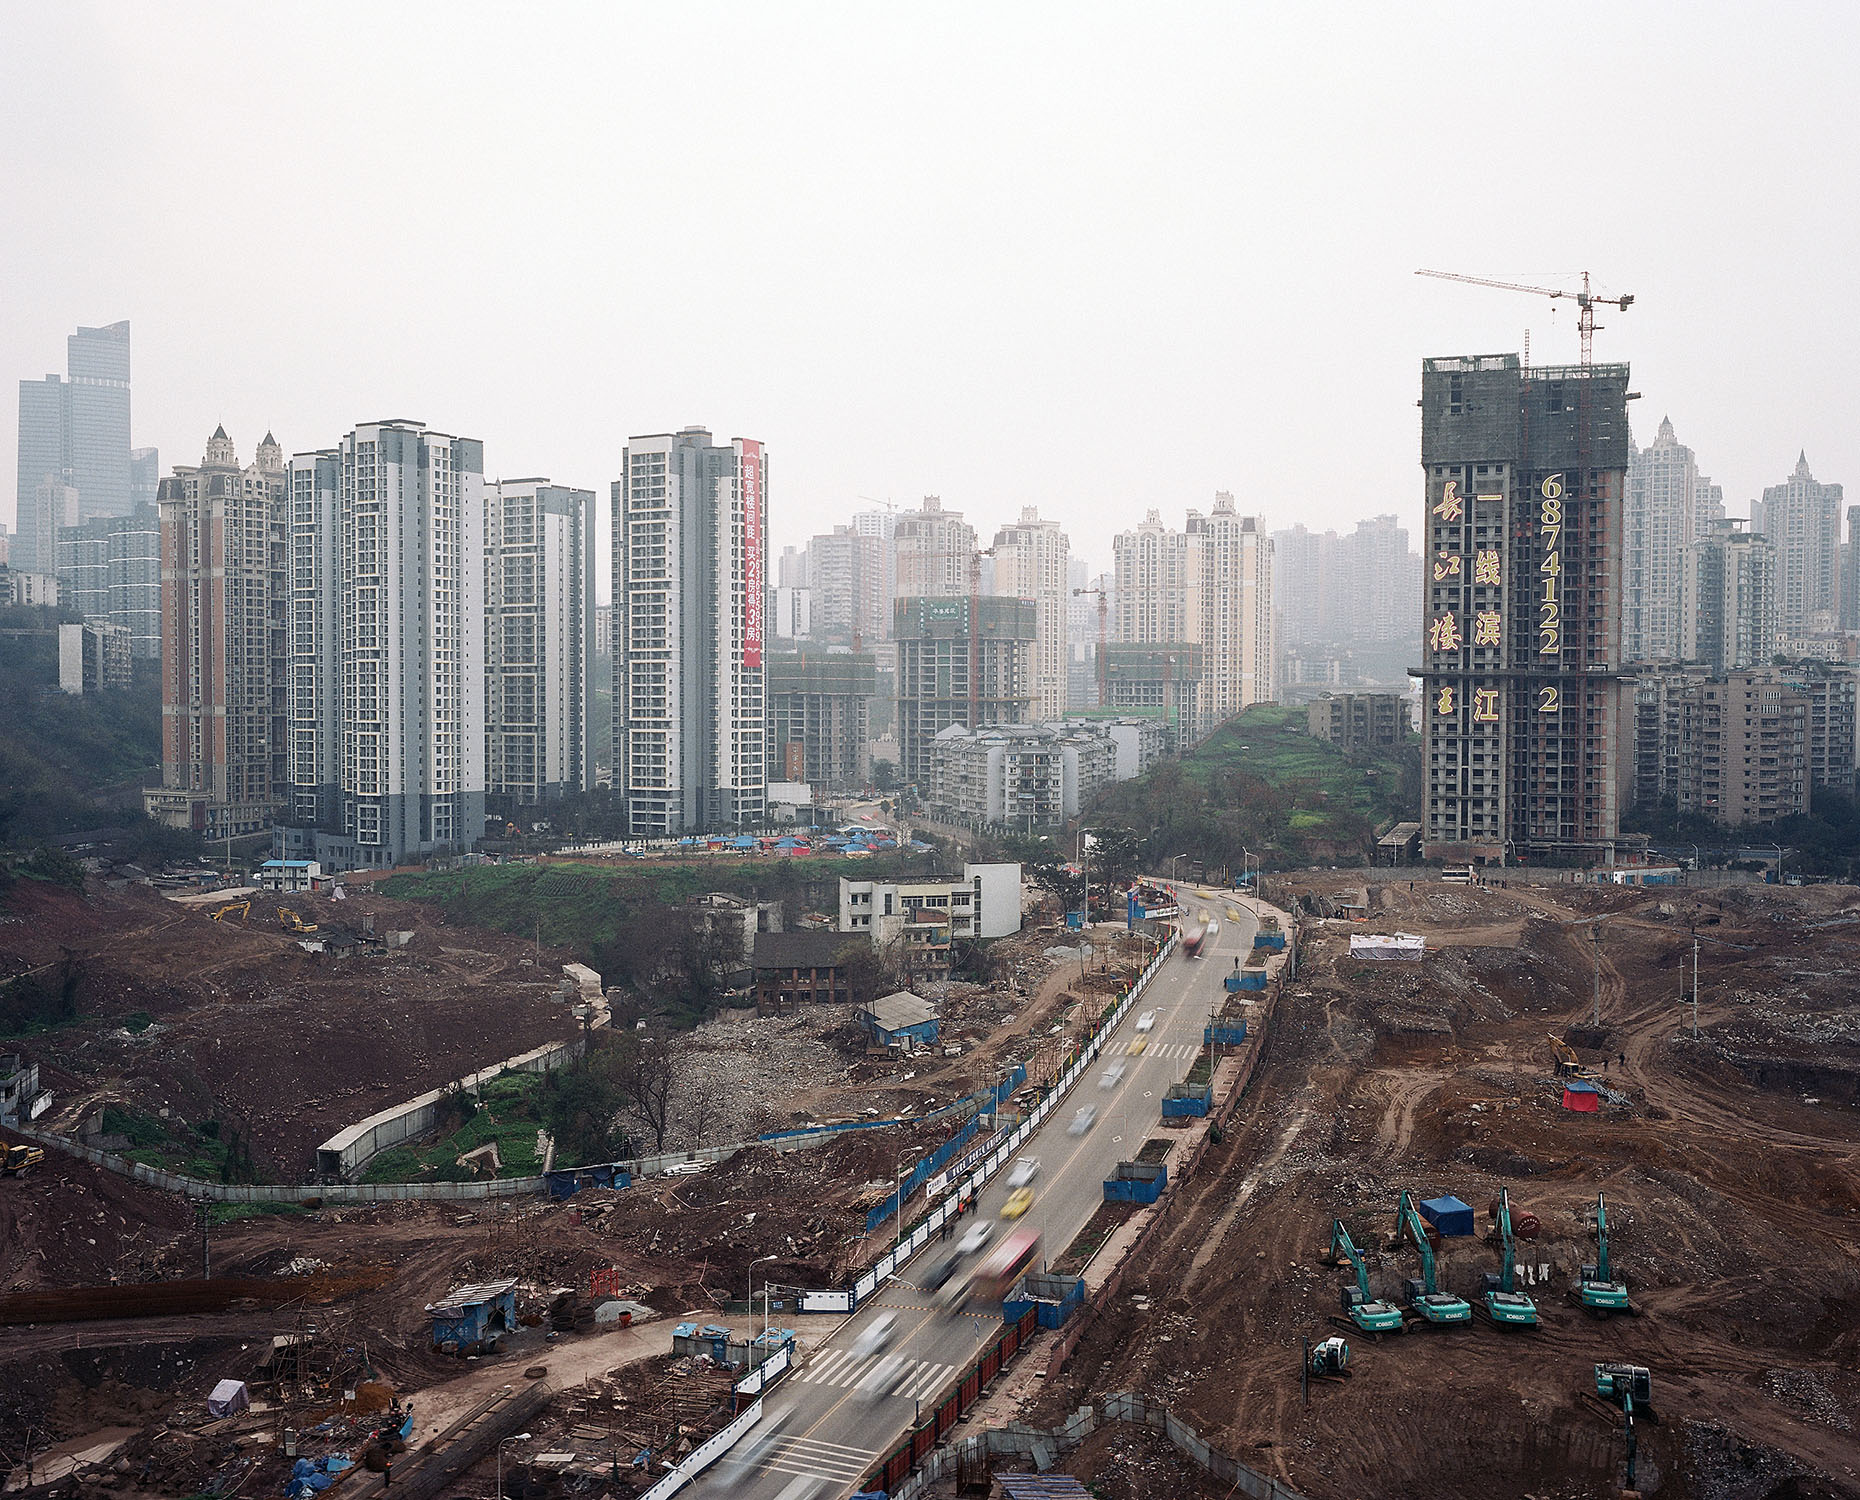 China urban landscape photography